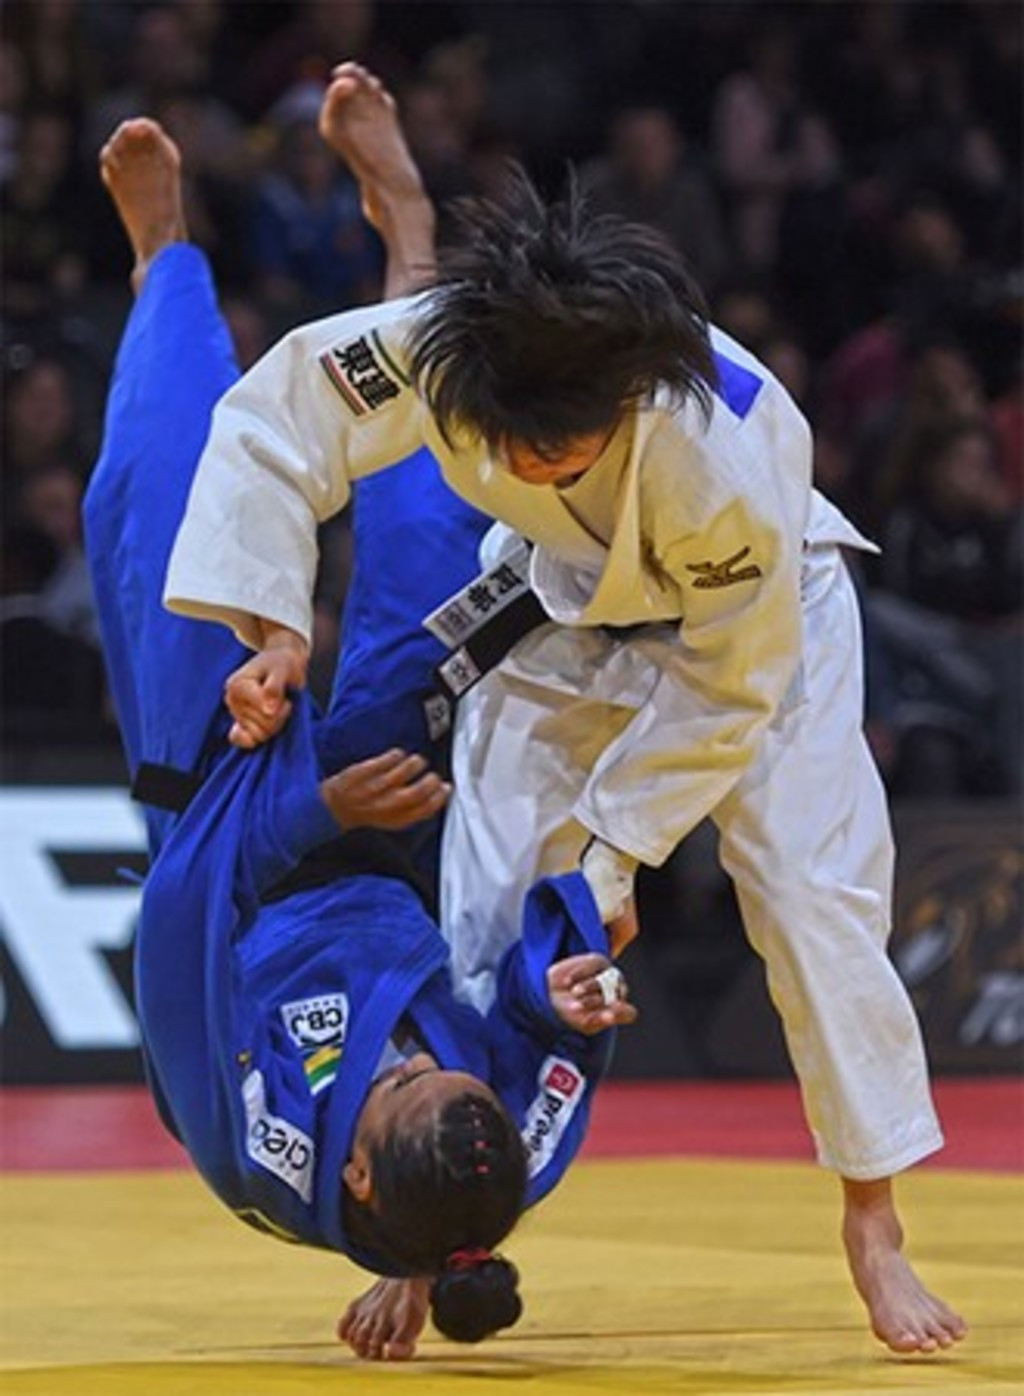 Japan's 17-year-old Abe Uta took just nine seconds to win her first bout against Brazil's Eleudis Valentim en route to the under 52kg gold medal in the Paris Grand Prix ©IJF